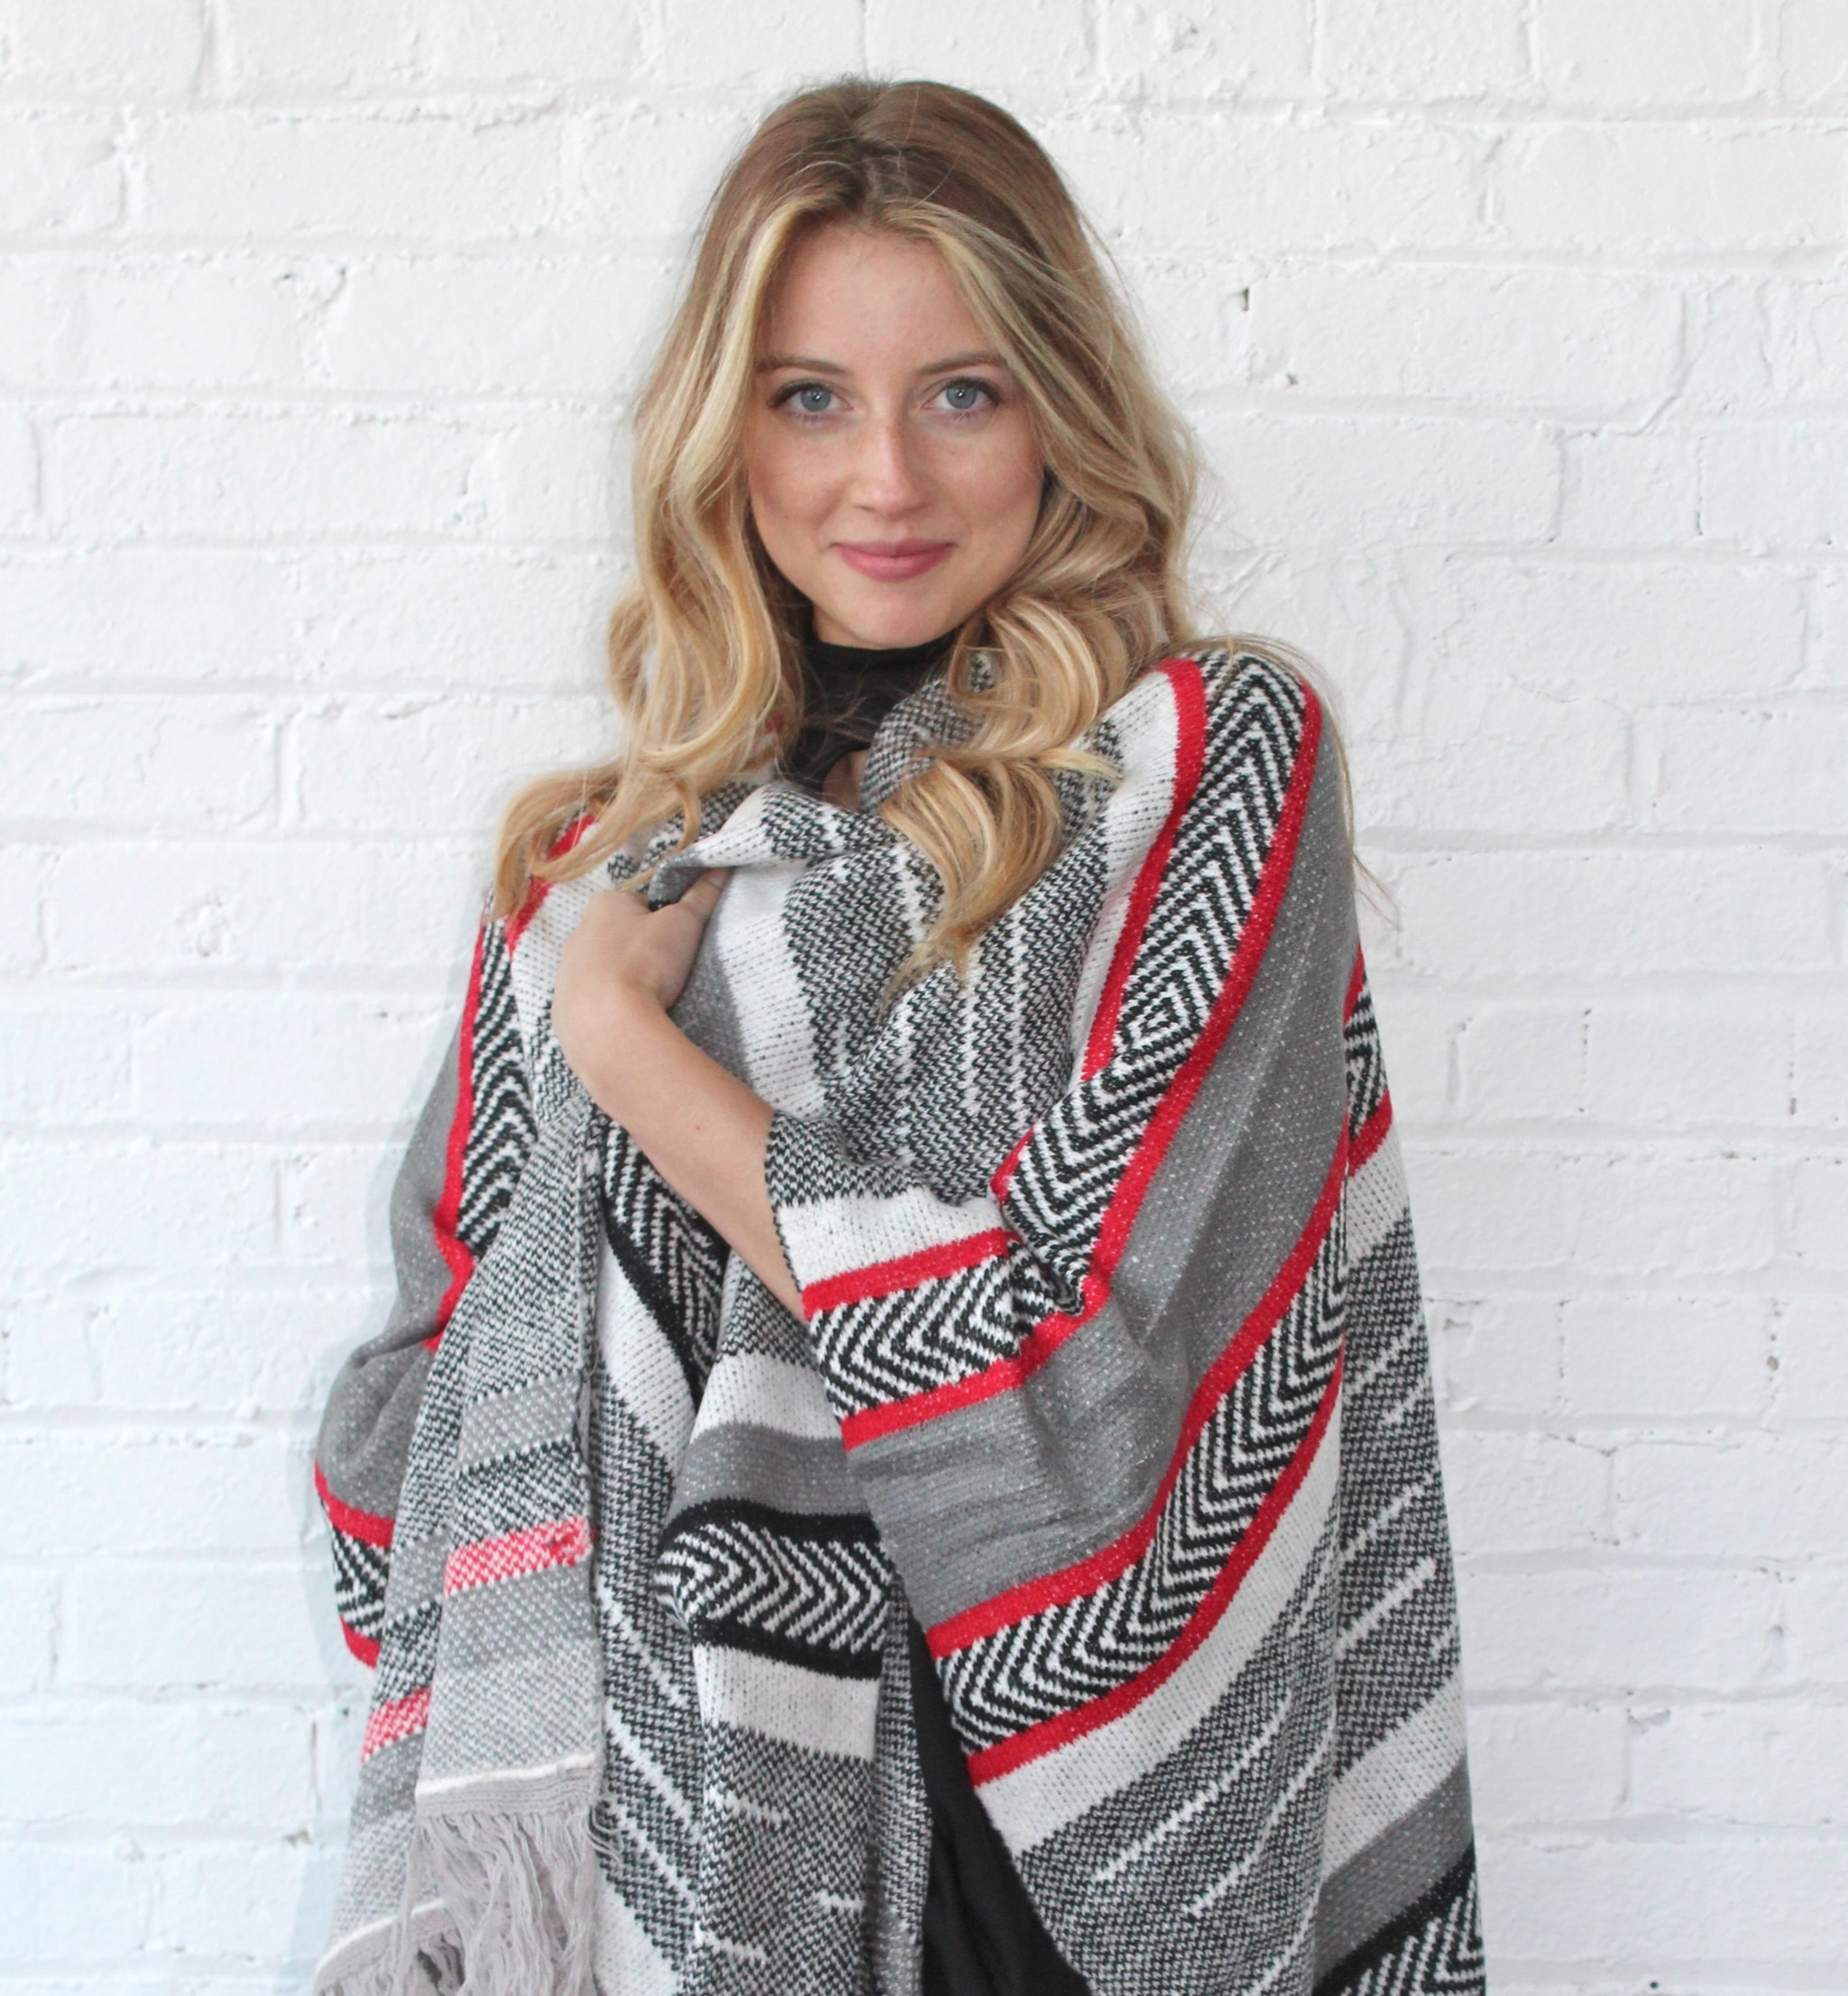 ELAN PONCHO - JOLIE OCCASIONSStyle it with the perfect suns, this Poncho from Jolie Occasions translates well from day to night.image: jolieoccasions.com